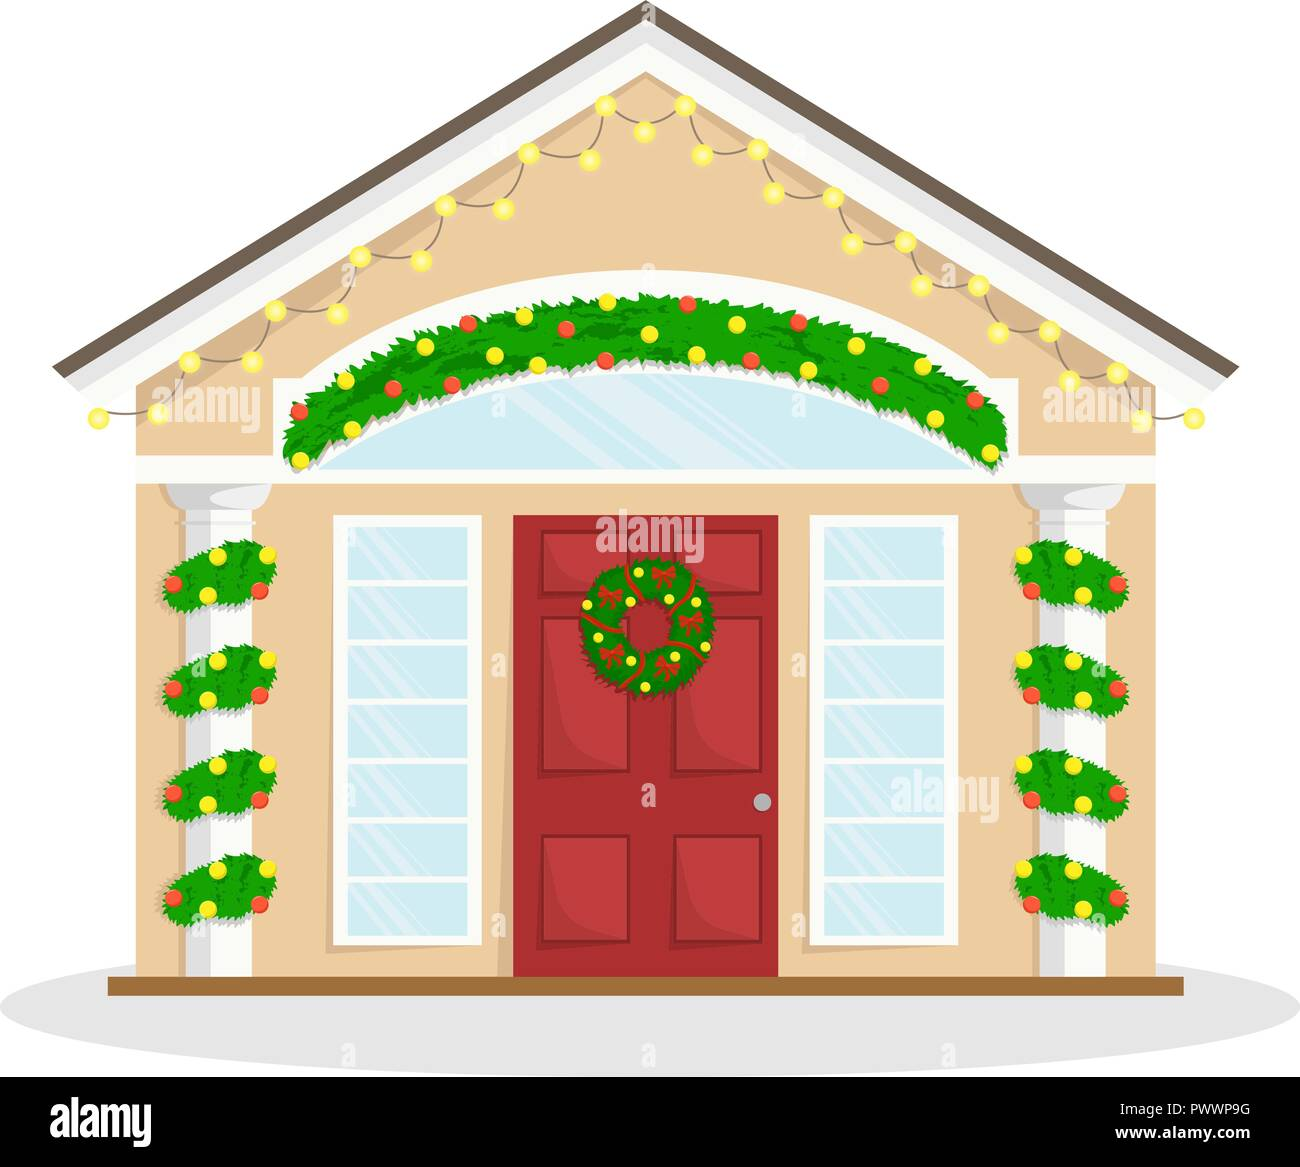 Christmas house with New Year decoration. Winter holidays. Christmas wreath. Flat winter vector illustration. Stock Vector